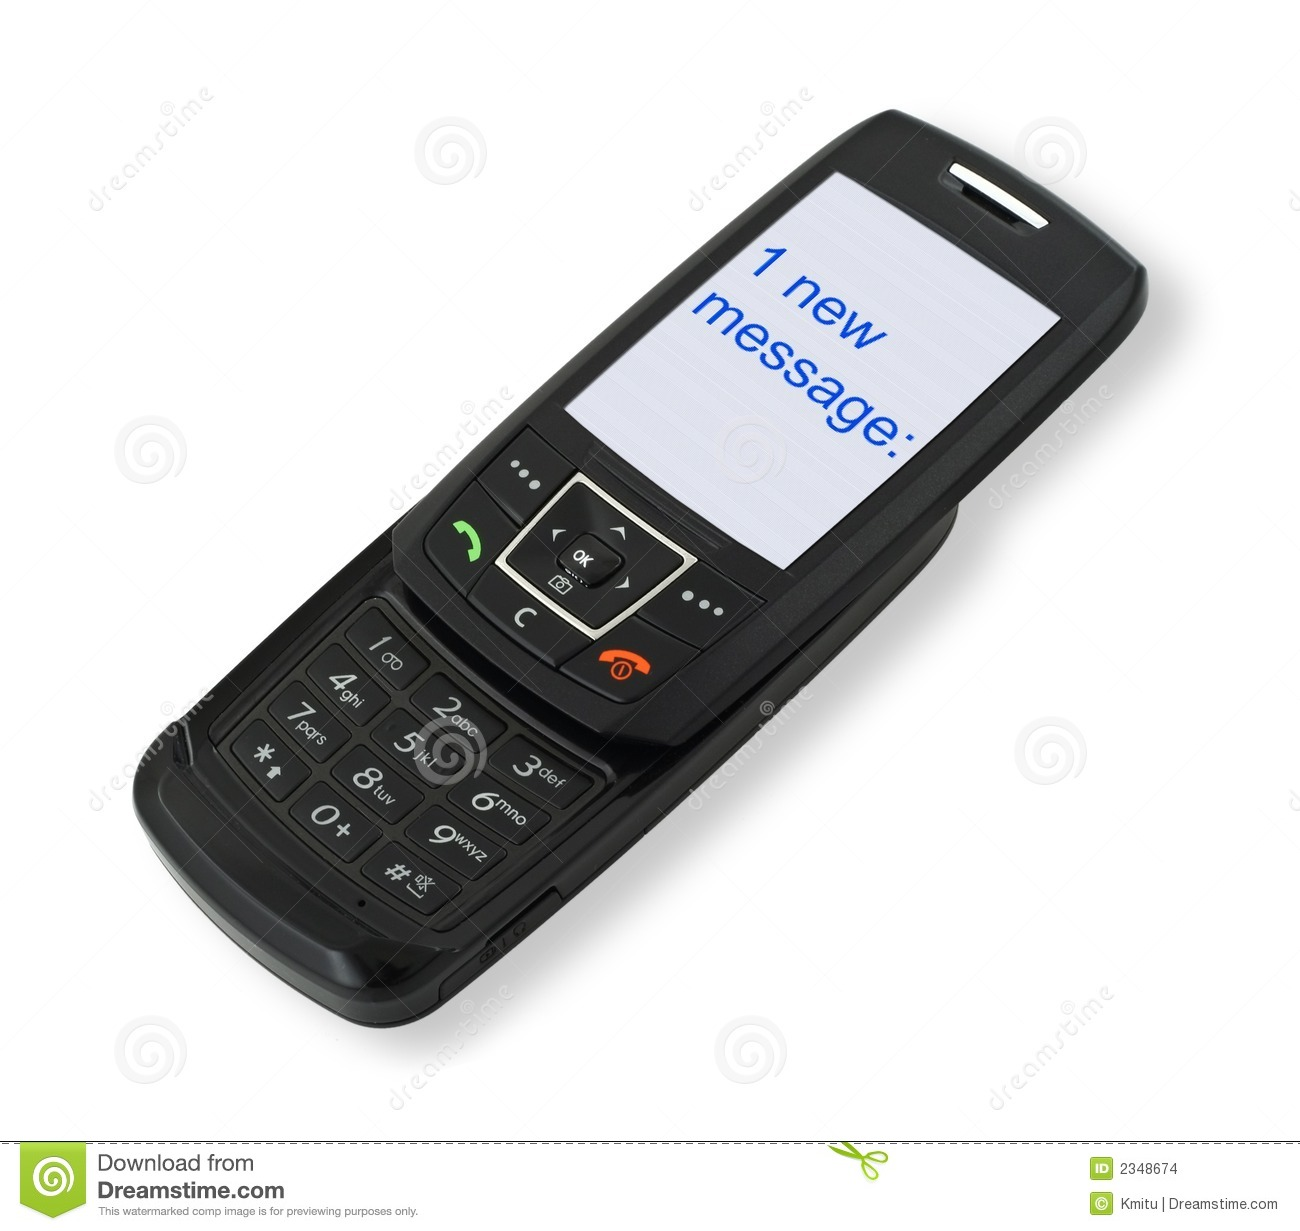 how to send sms from mobile phone